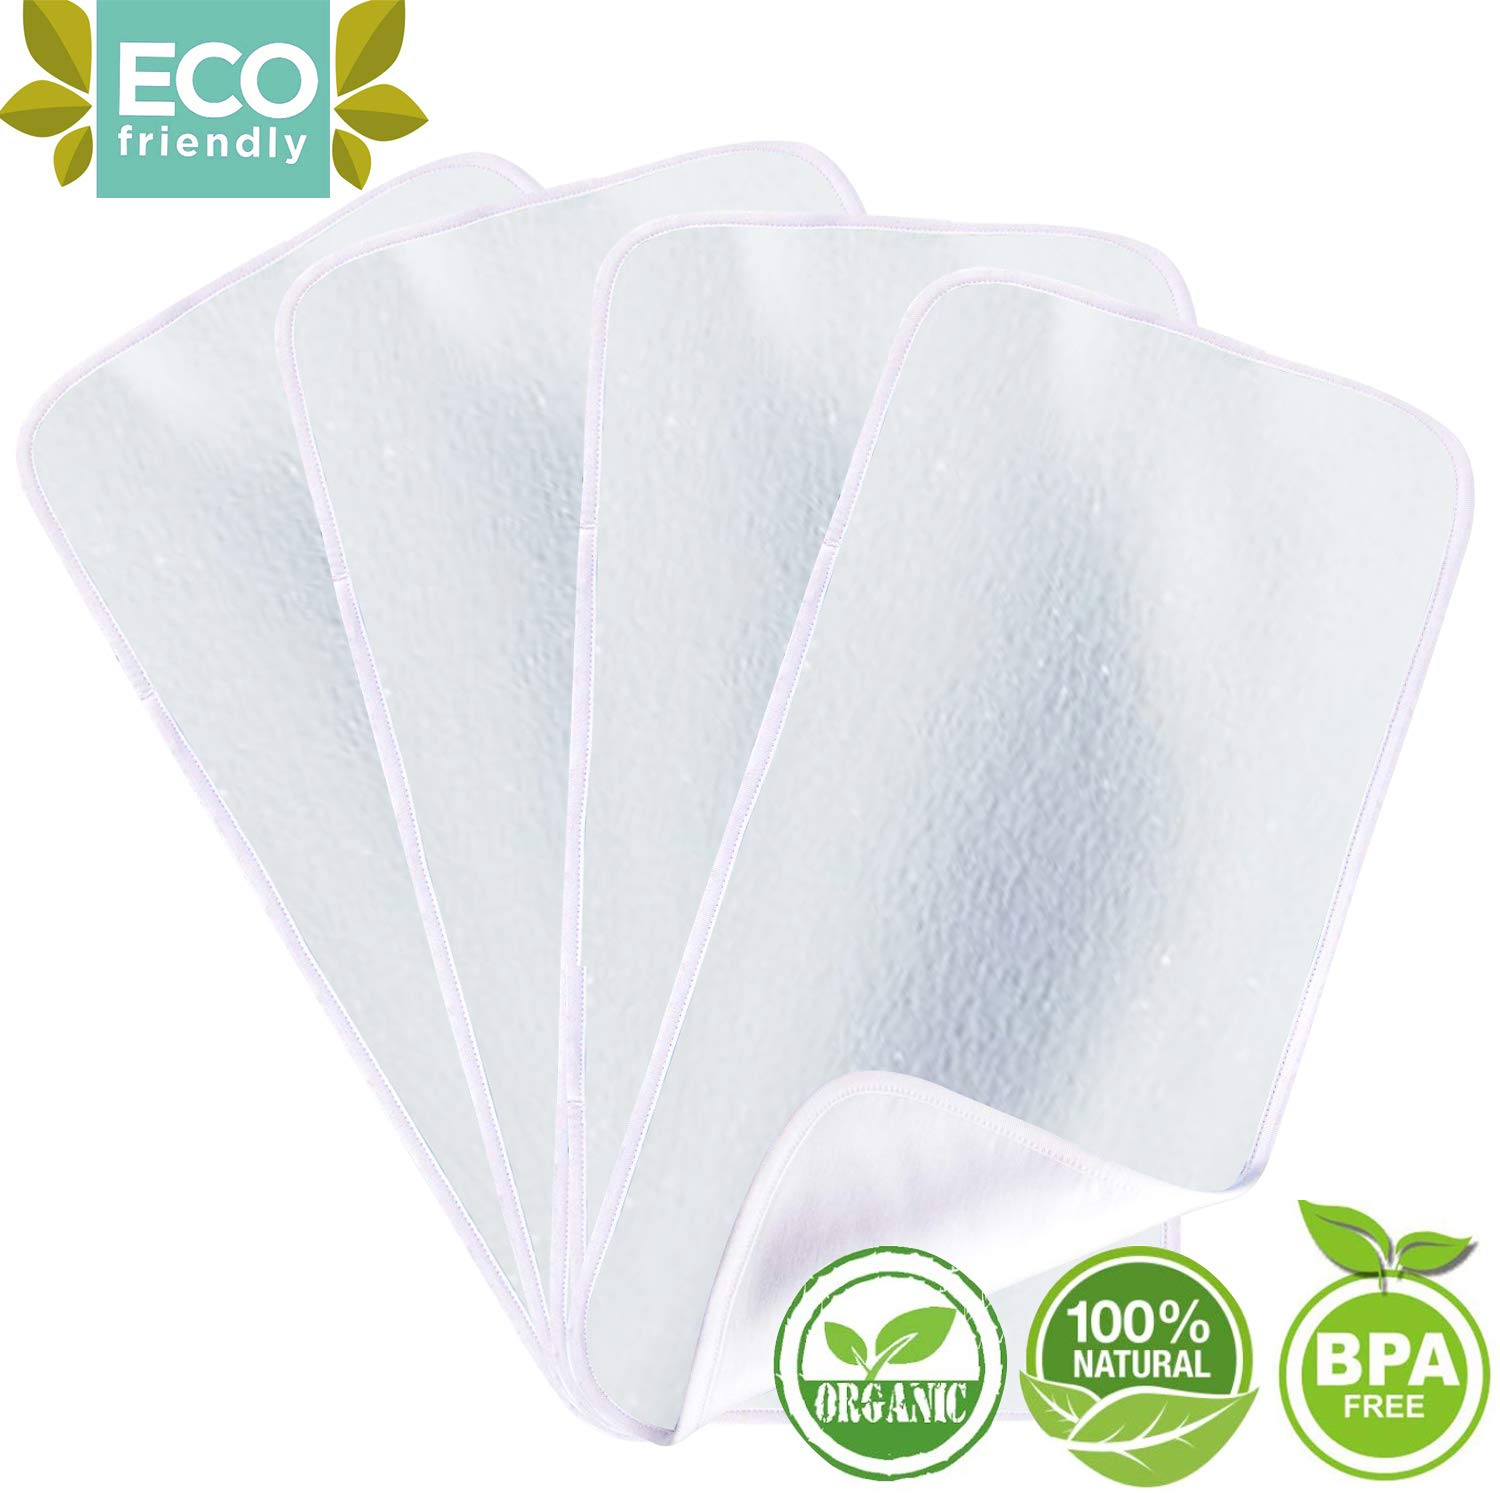 Organic Bamboo Burp Cloths - Thickening 2 Layer Ultra Absorbent Burping Cloth for Baby Boys and Girls, Newborn Essentials Towel - Milk Spit Up Rags - Burpy Bib for Unisex - White (4-Pack) by HIPHOP PANDA